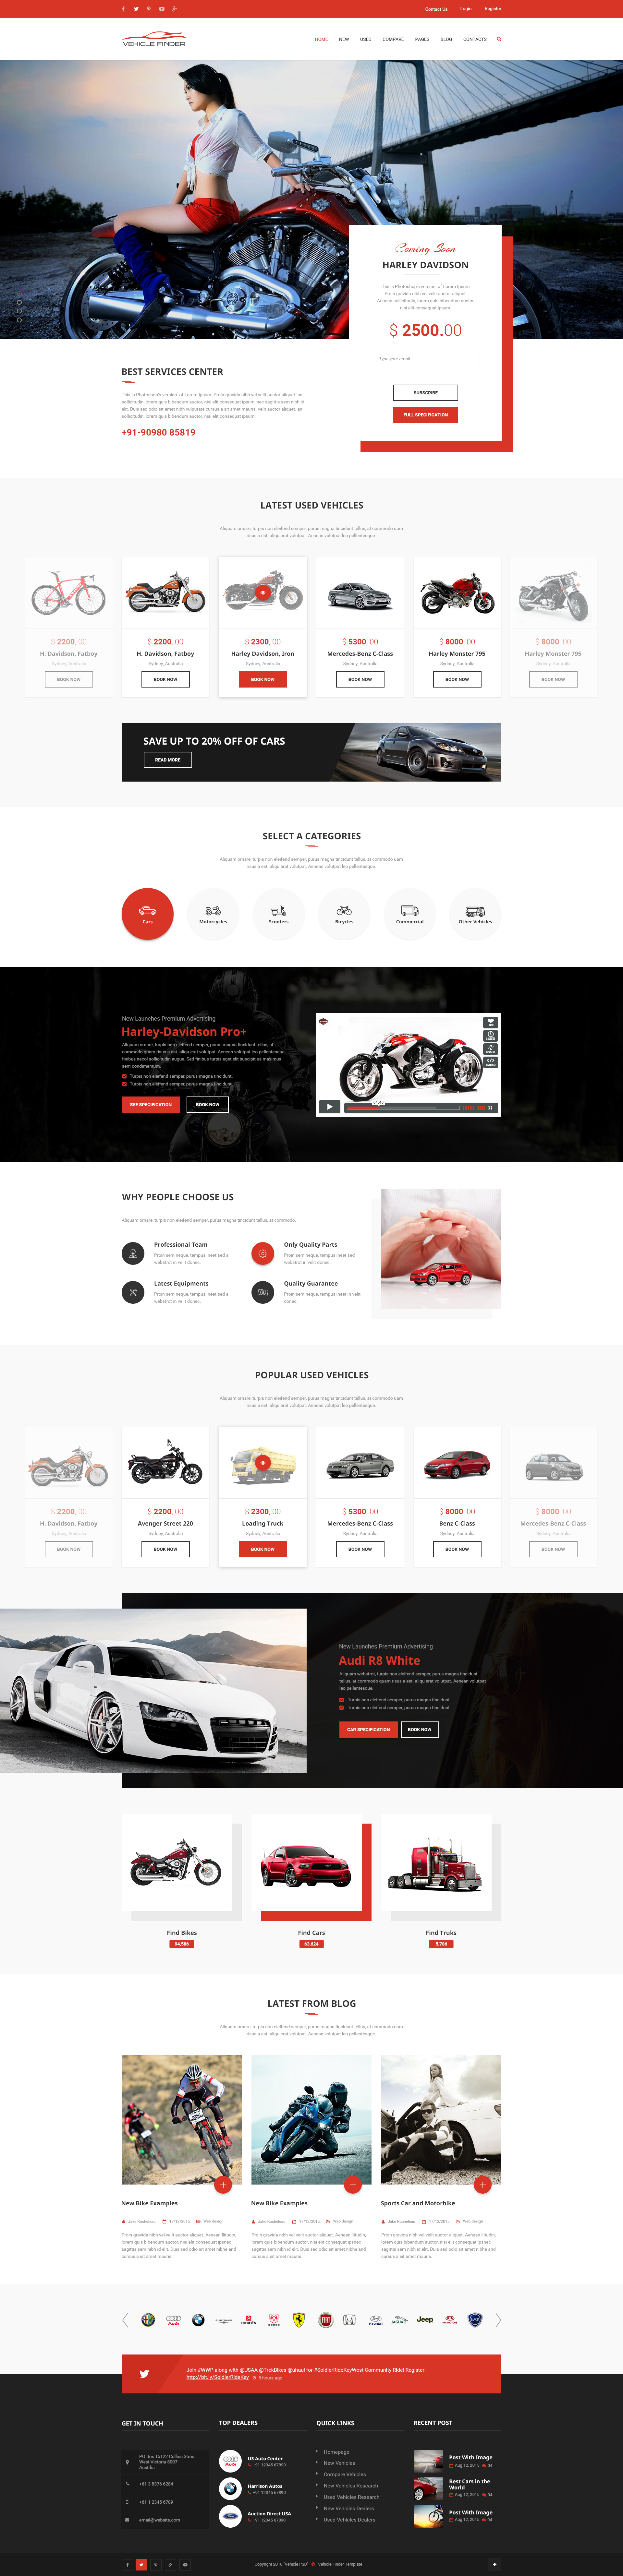 Vehicle Finder and Booking PSD Template